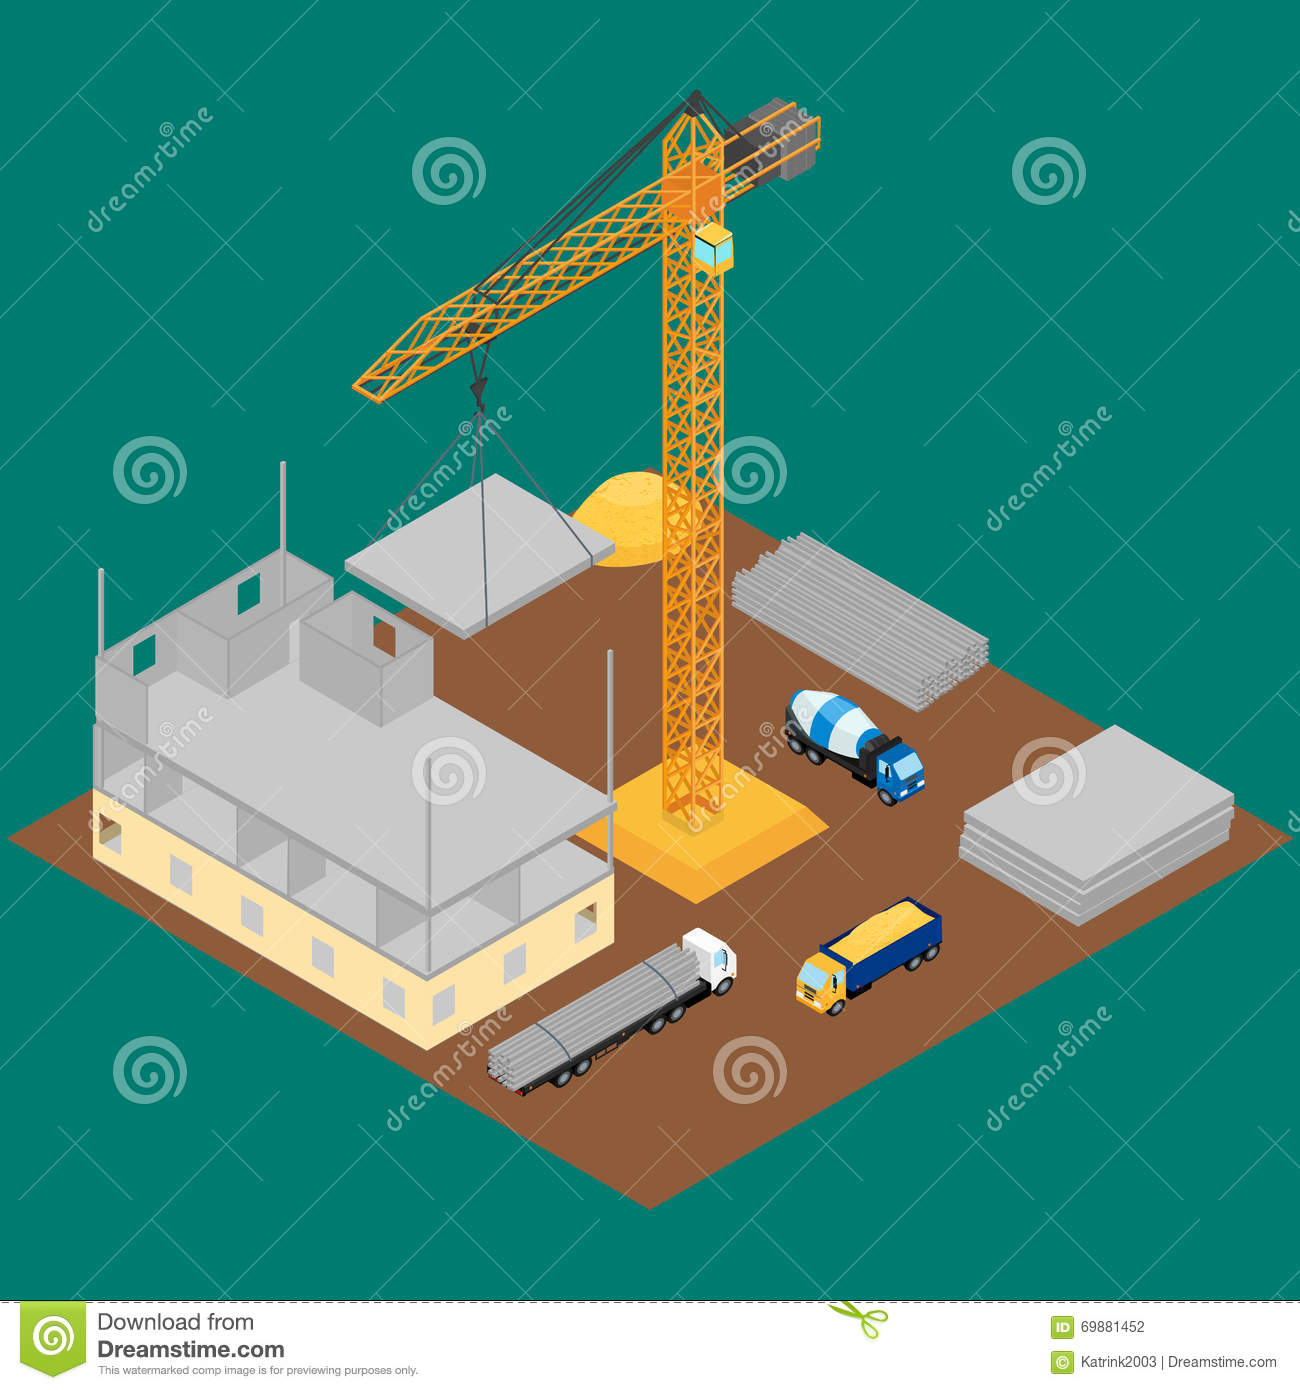 Construction Site Stock Vector - Image: 69881452